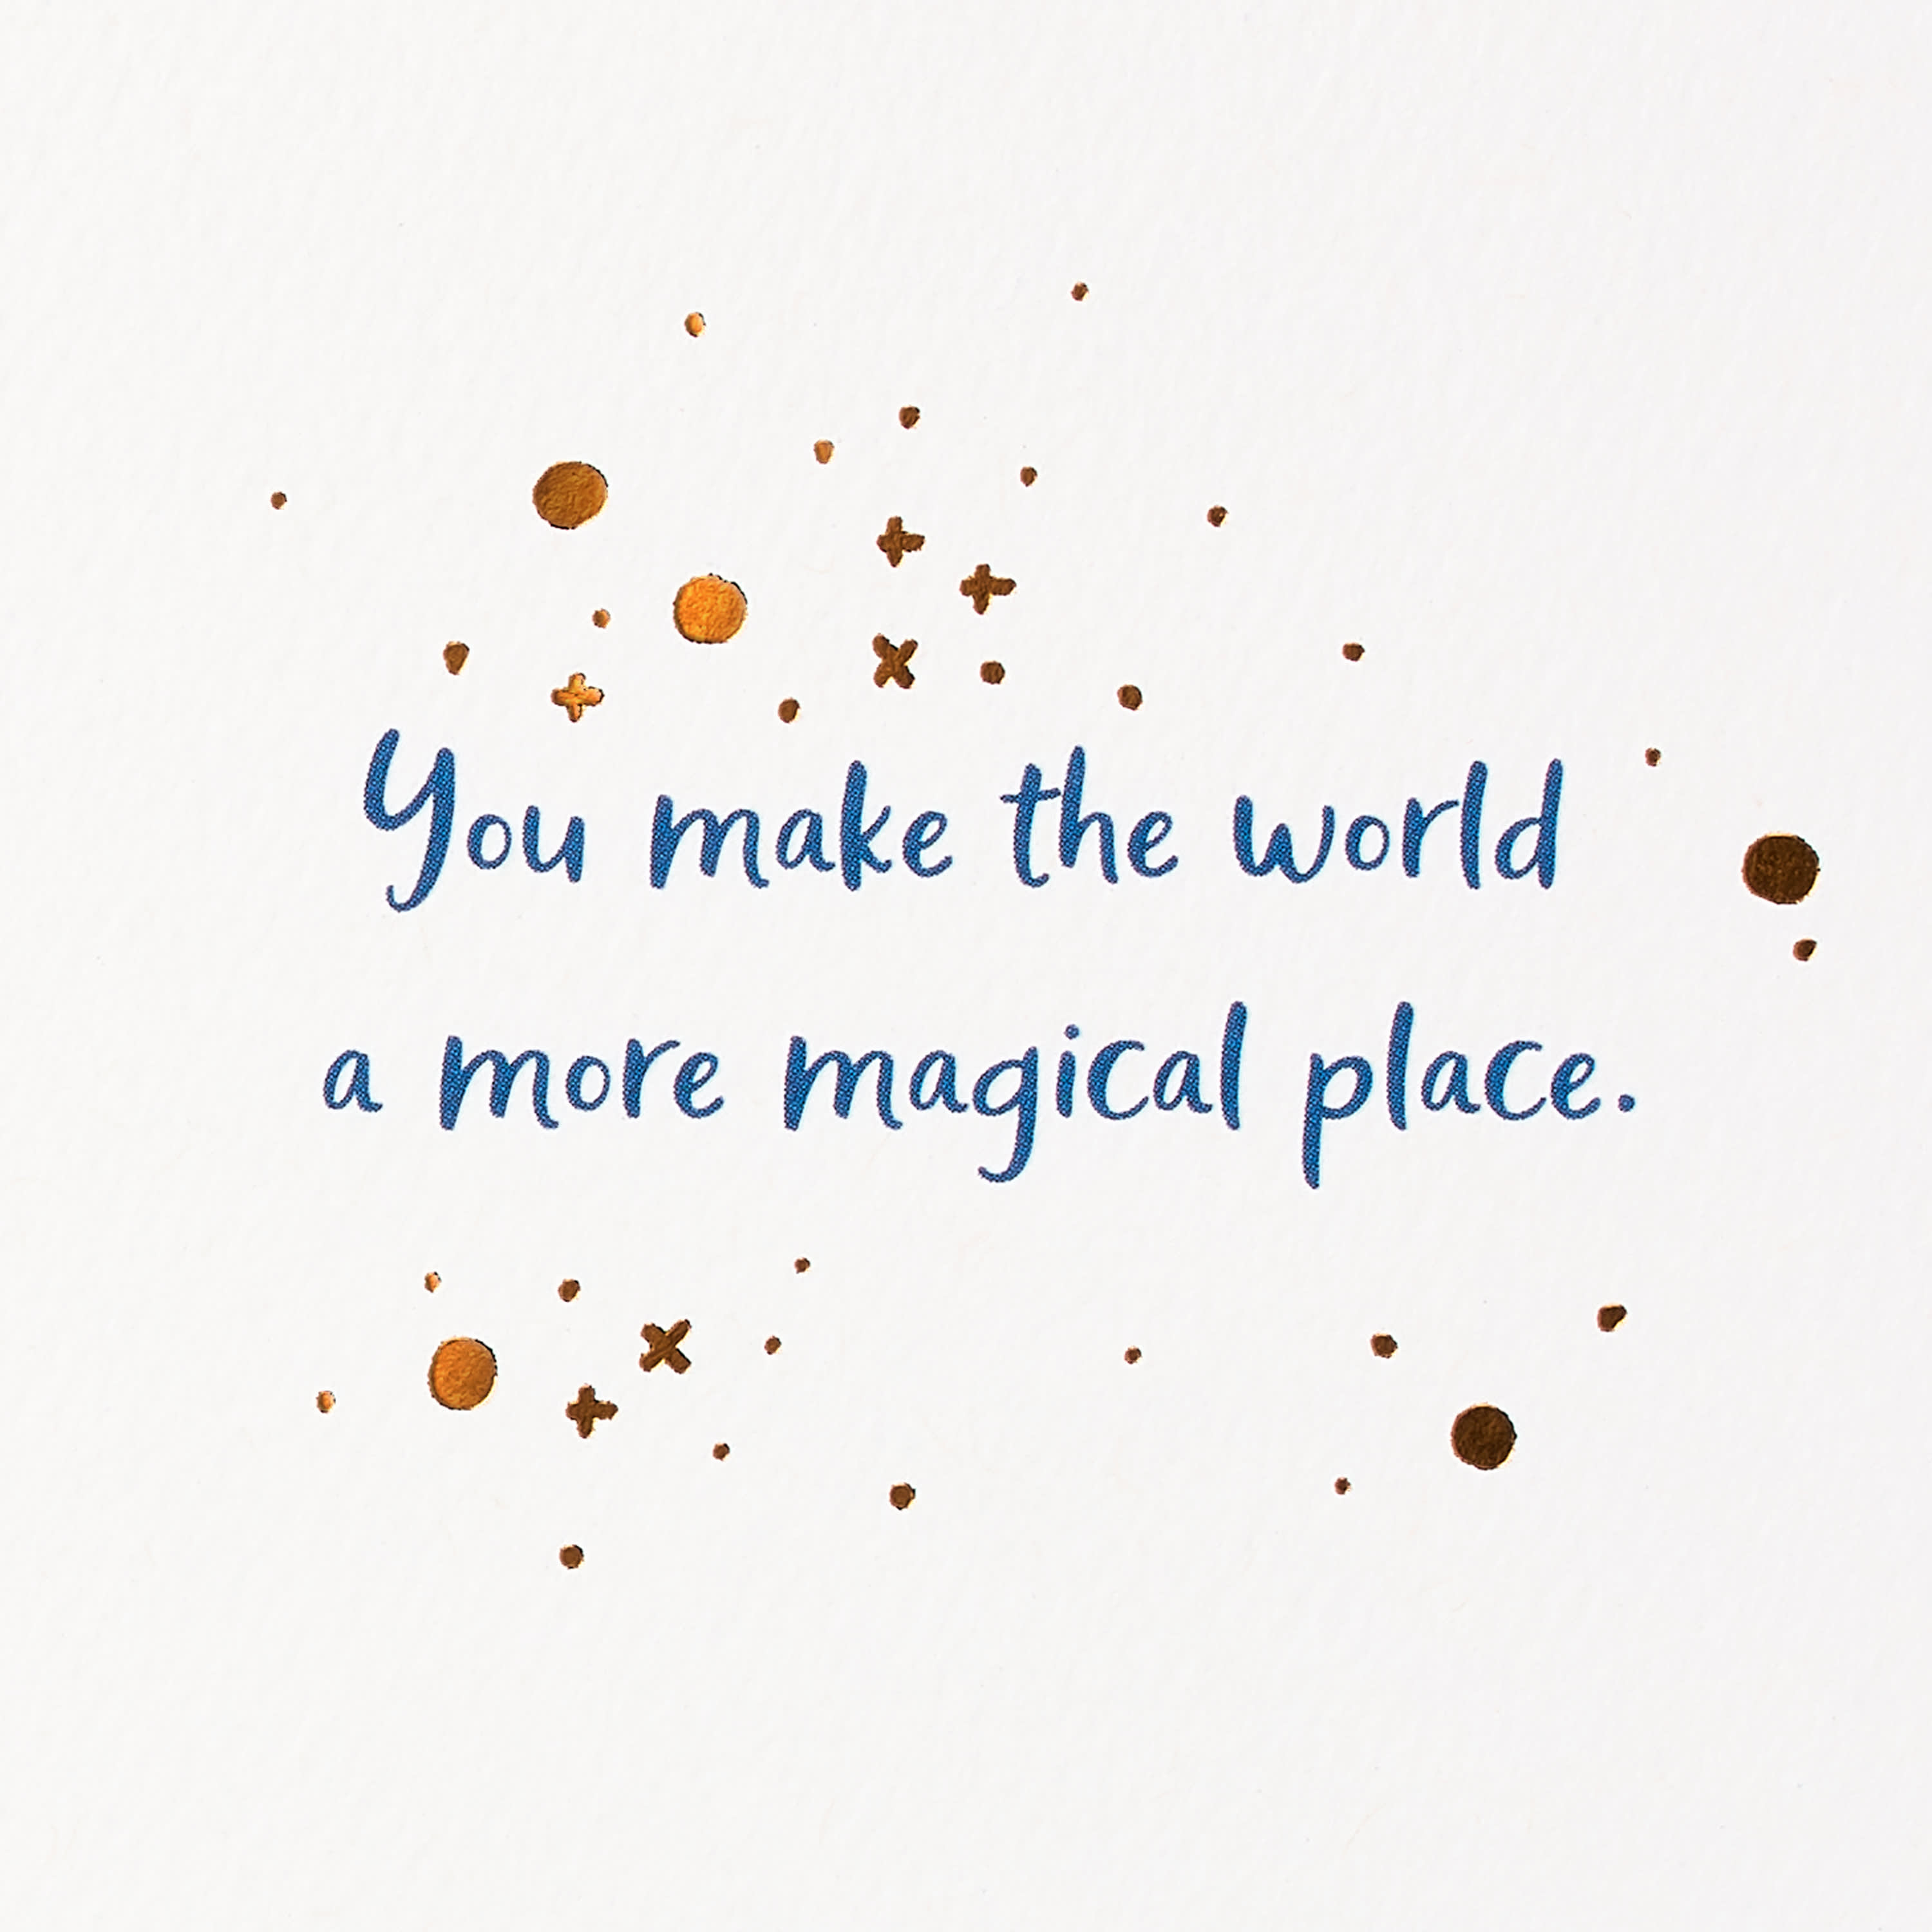 Magical Place Birthday Card for Wife image